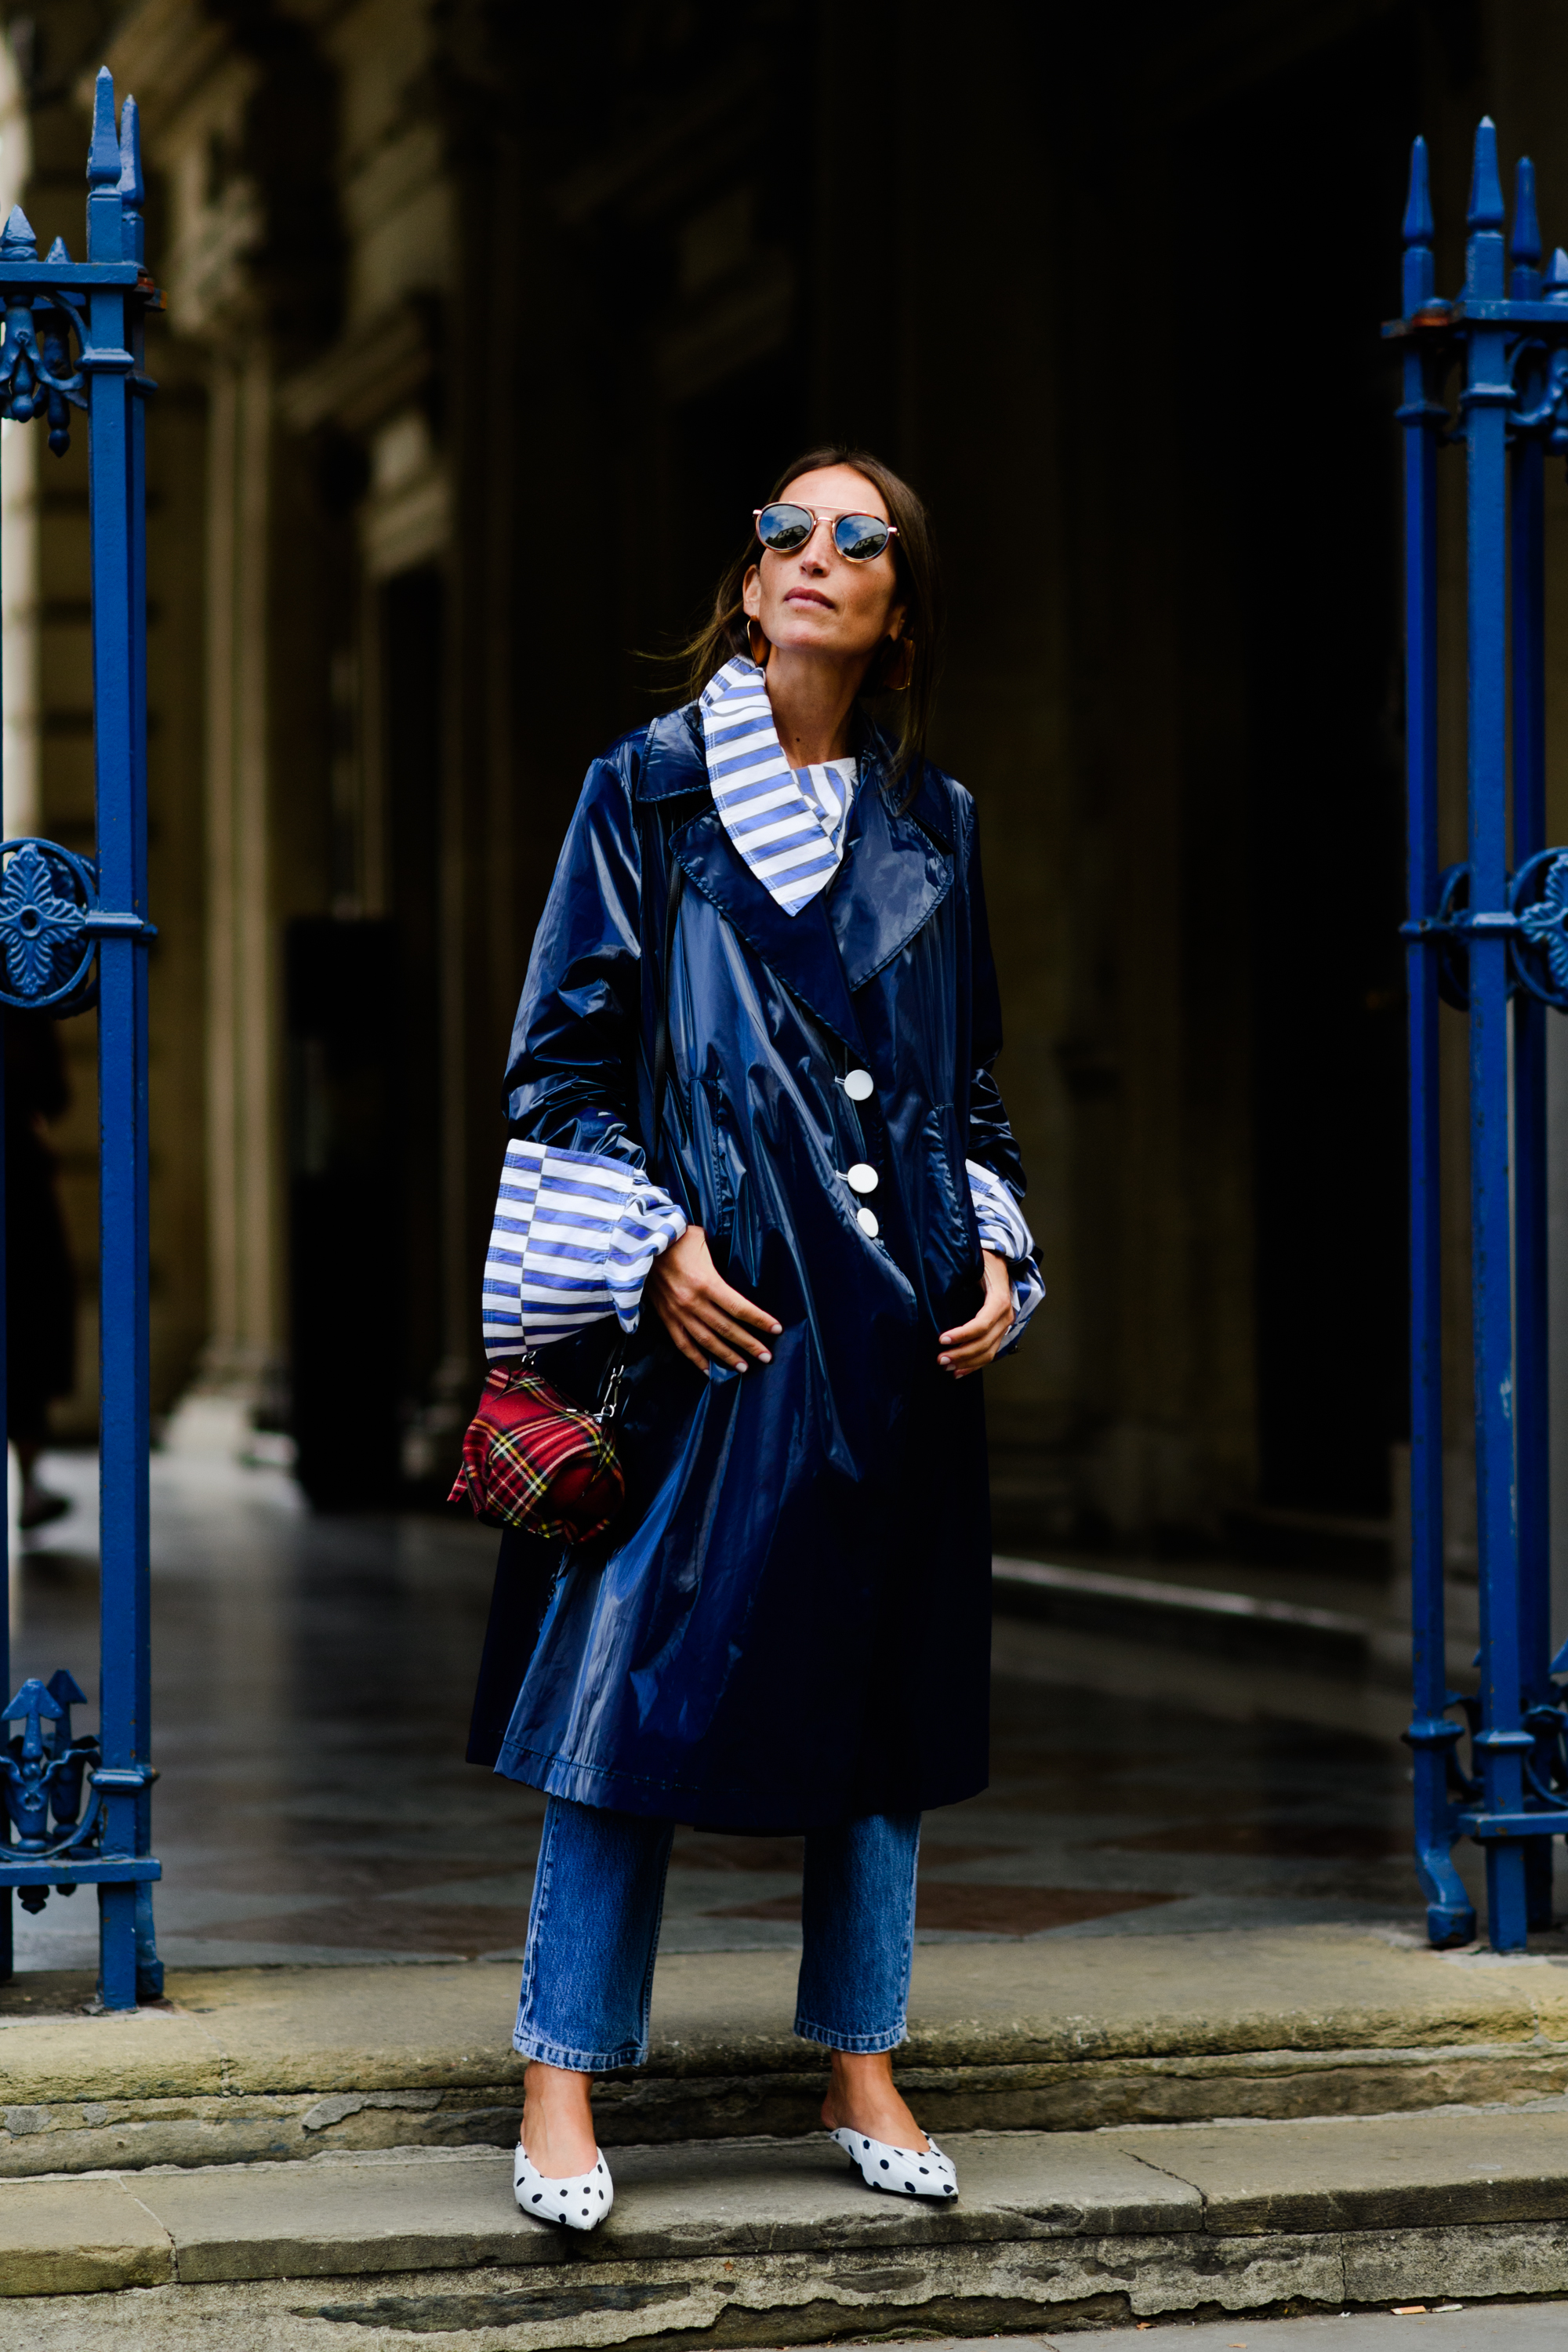 london-lfw-street-style-ss18-day-1-tyler-joe-102-1505753312